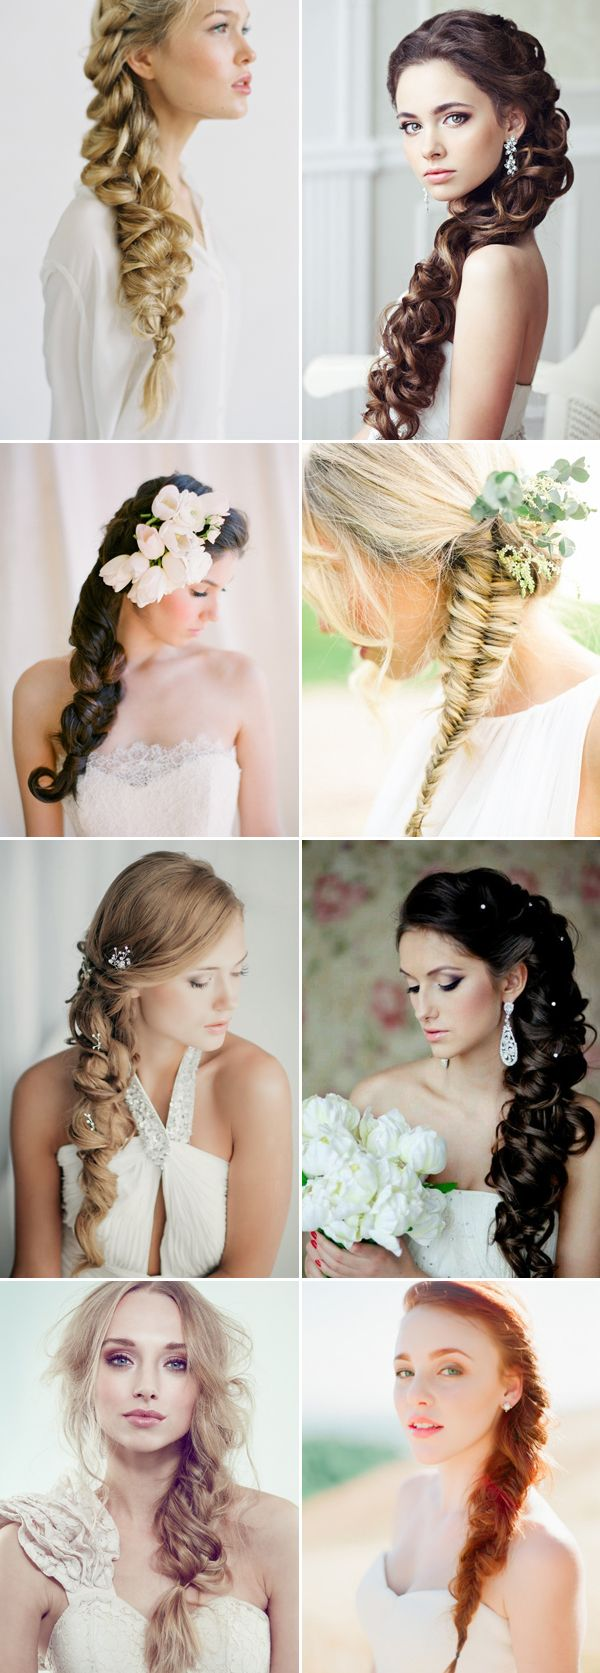 best 25+ wedding hair side ideas on pinterest | side hairstyles